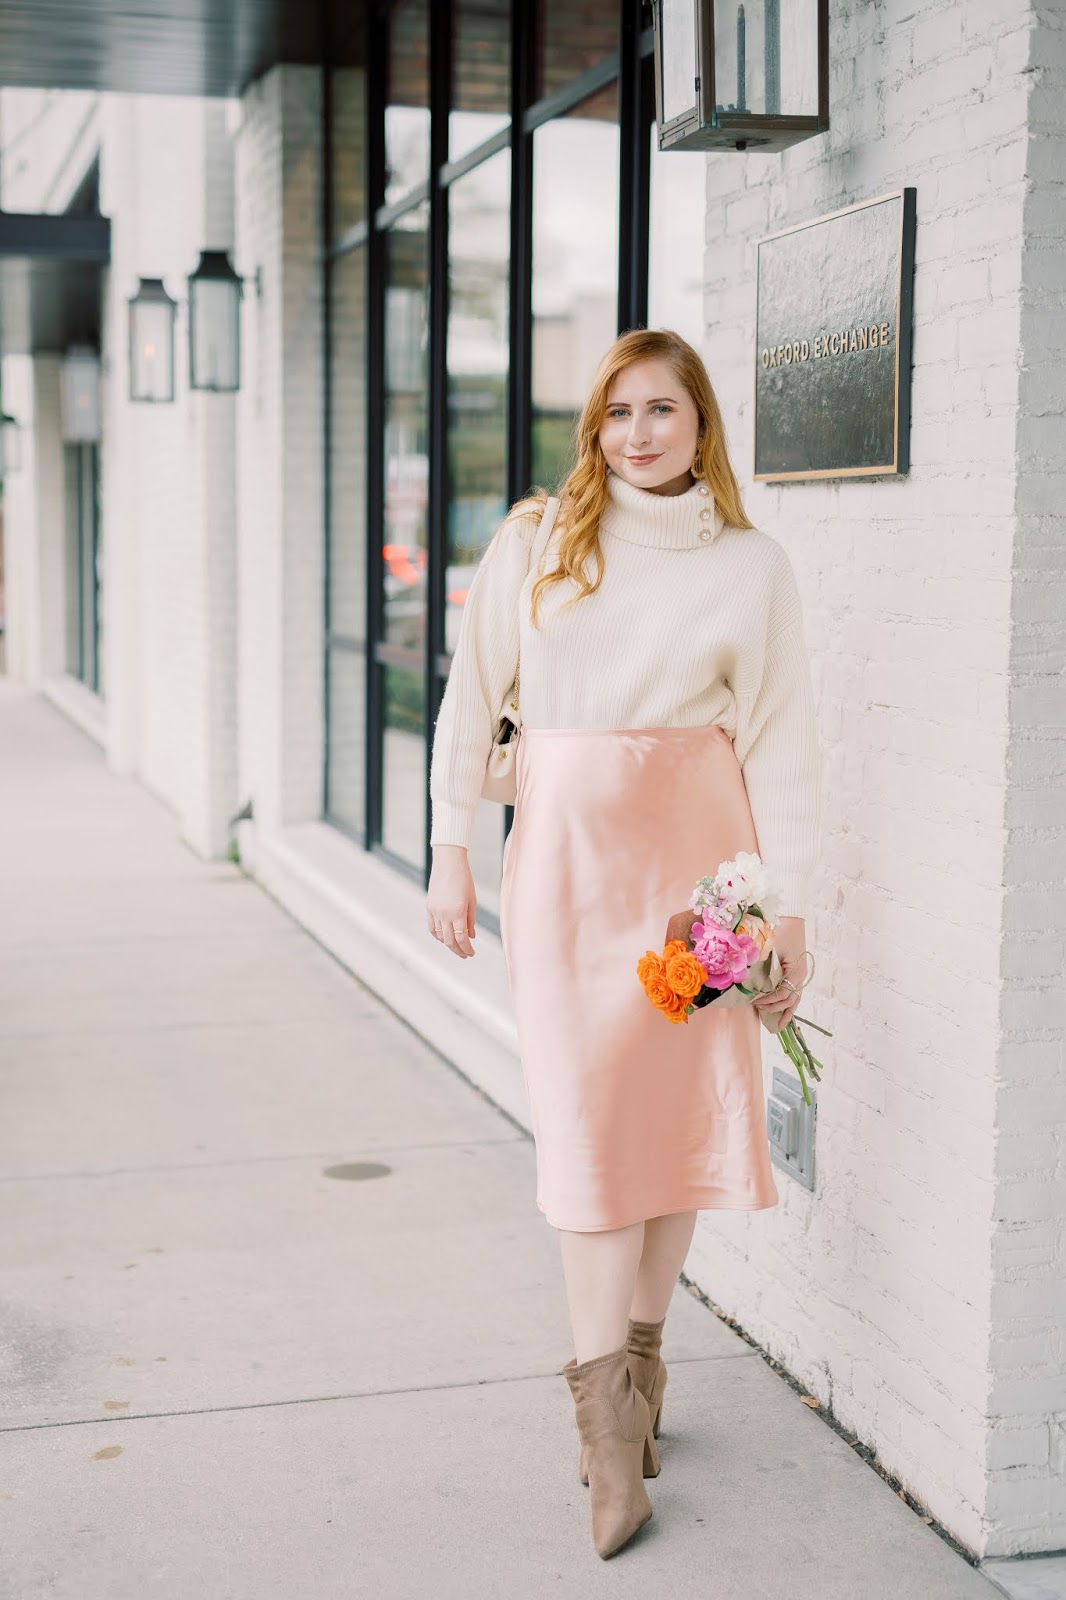 Where to Snag The Best Turtleneck Sweaters Under $50 | Style Blogger Amanda Burrows of Affordable by Amanda wears a cream chunky rib-knit turtleneck from H&M and a pink satin midi skirt from LC Lauren Conrads Kohl's collection at Oxford Exchange in Tampa, Florida. Photo taken by Studio Magnolia.